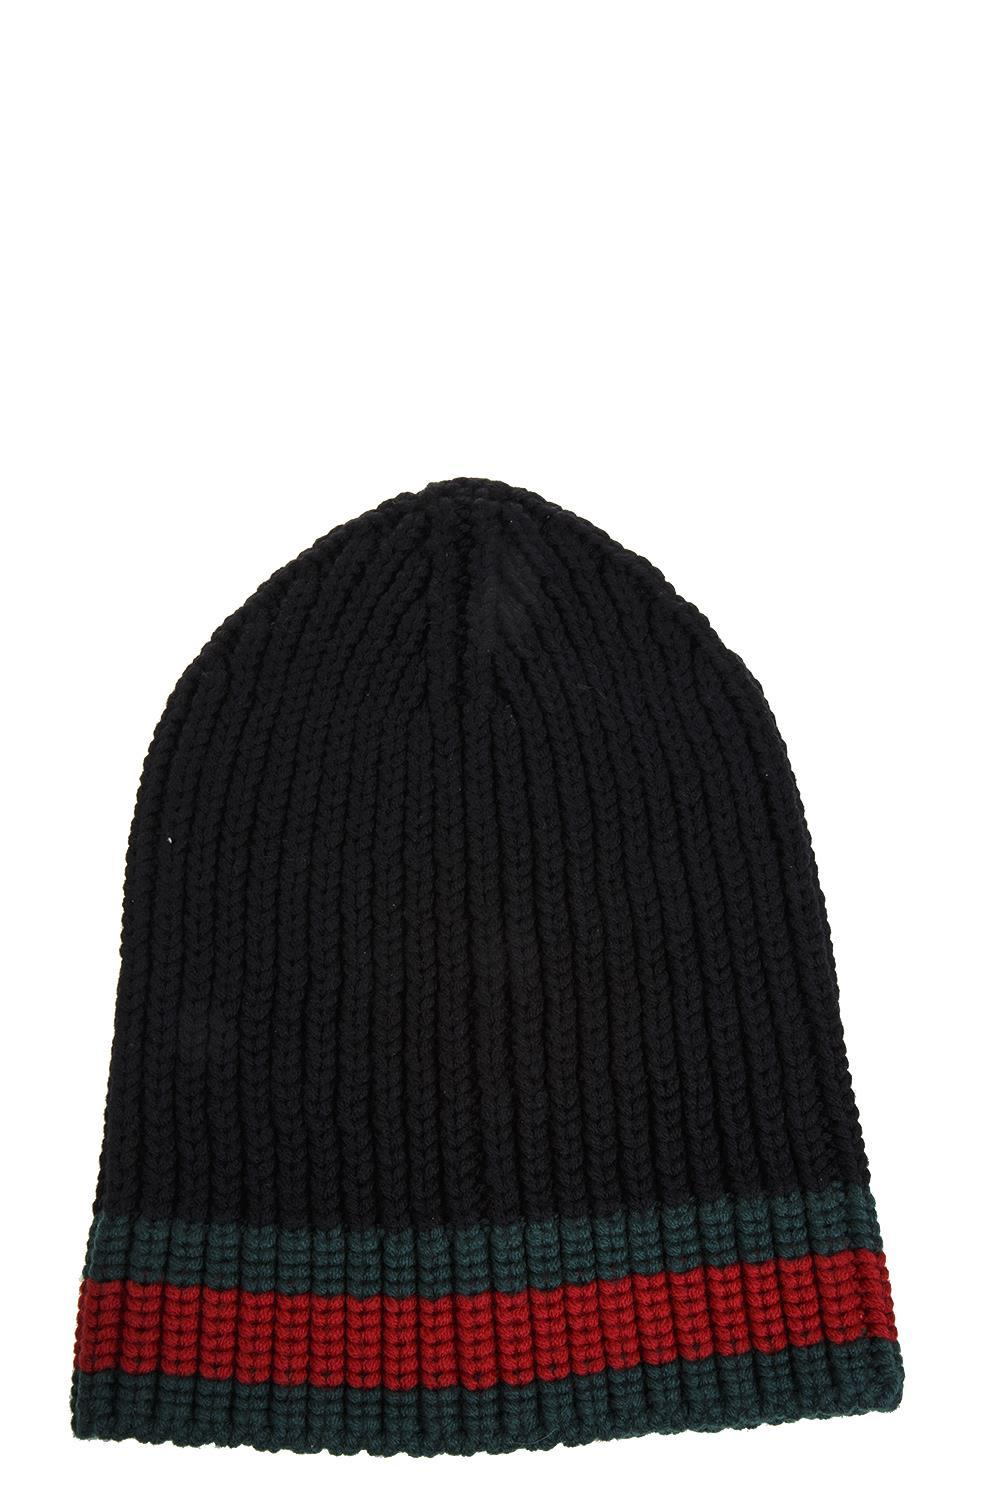 78ce0e867a523 Gucci Web Wool Cable Knit Beanie Hat In Black